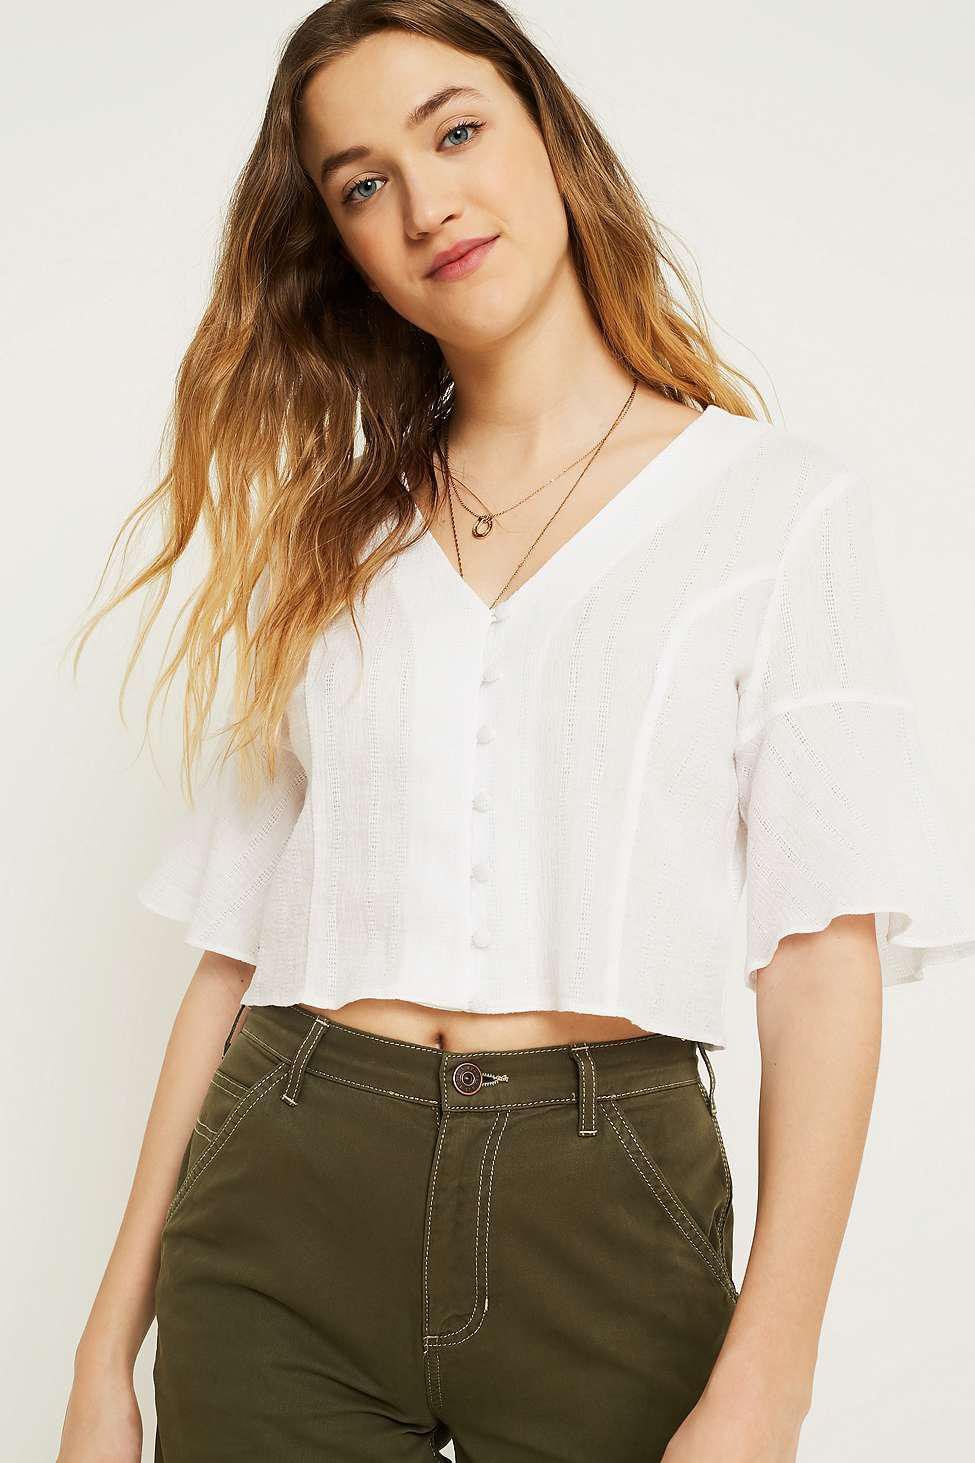 d7c37e5badf892 Urban Outfitters Uo Daydream White Blouse - Womens L in White - Lyst